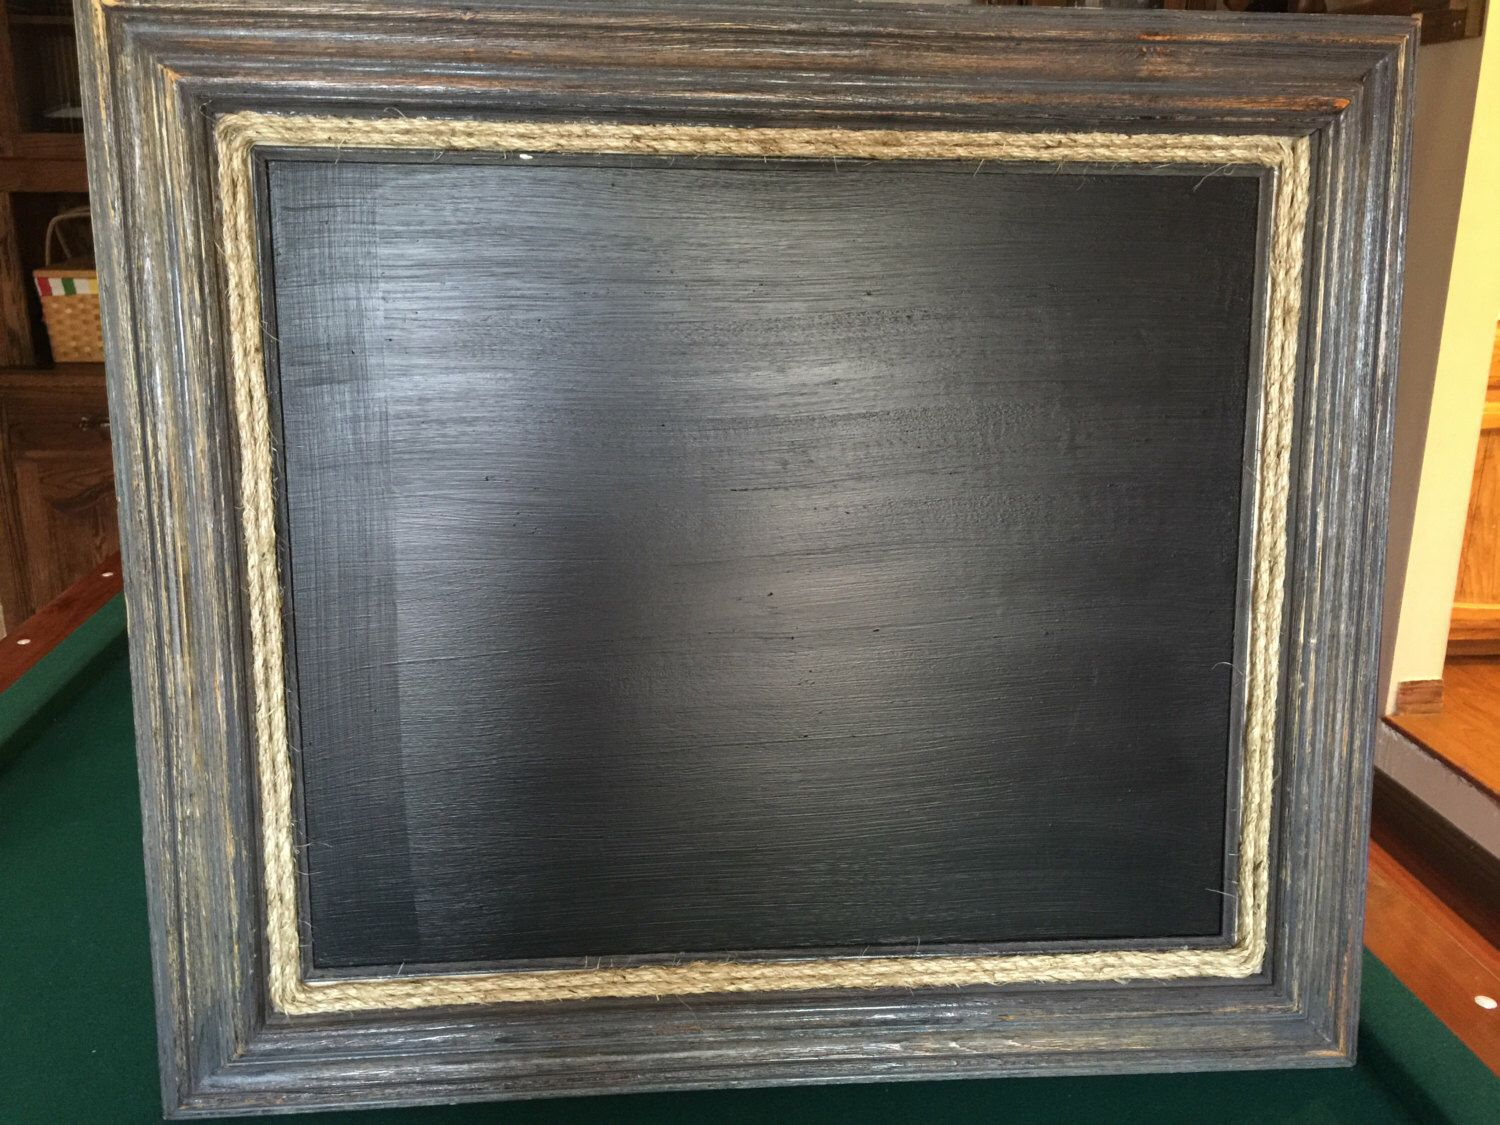 large rustic frame magnetic chalkboard for house or wedding 20x24 by youngcustomcreations on etsy https